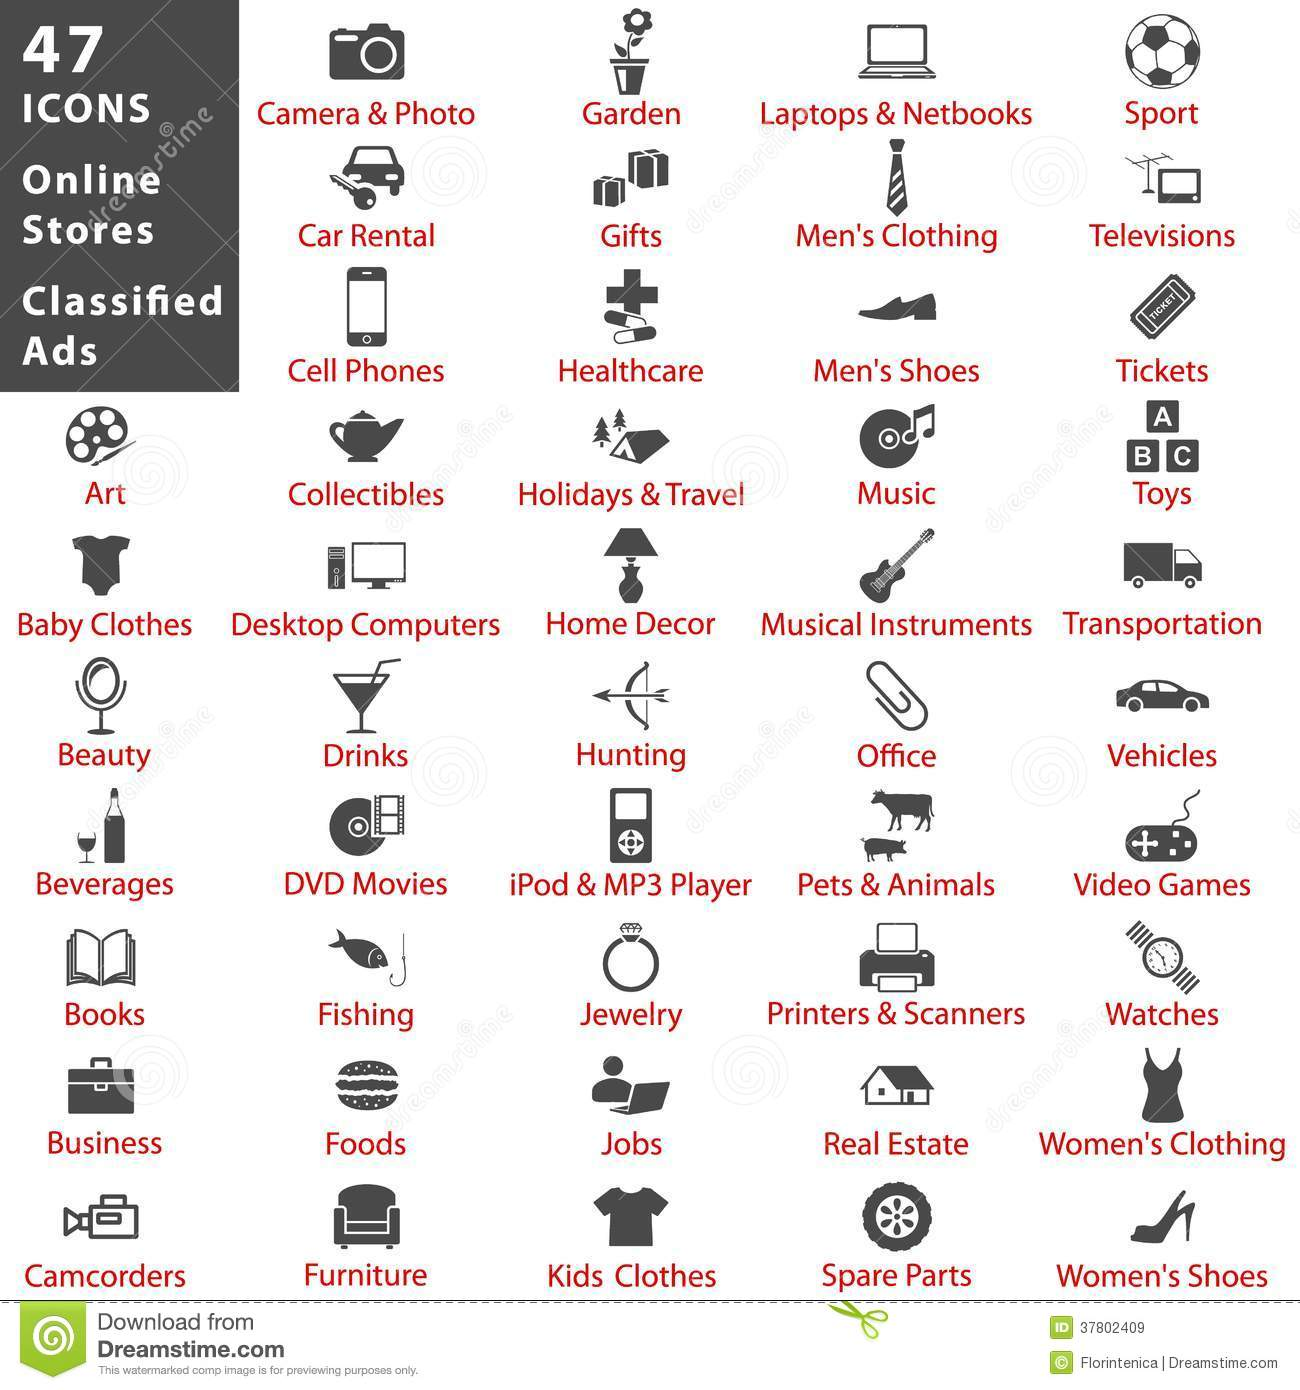 Online Stores And Classified Ads Icon Set Stock Vector